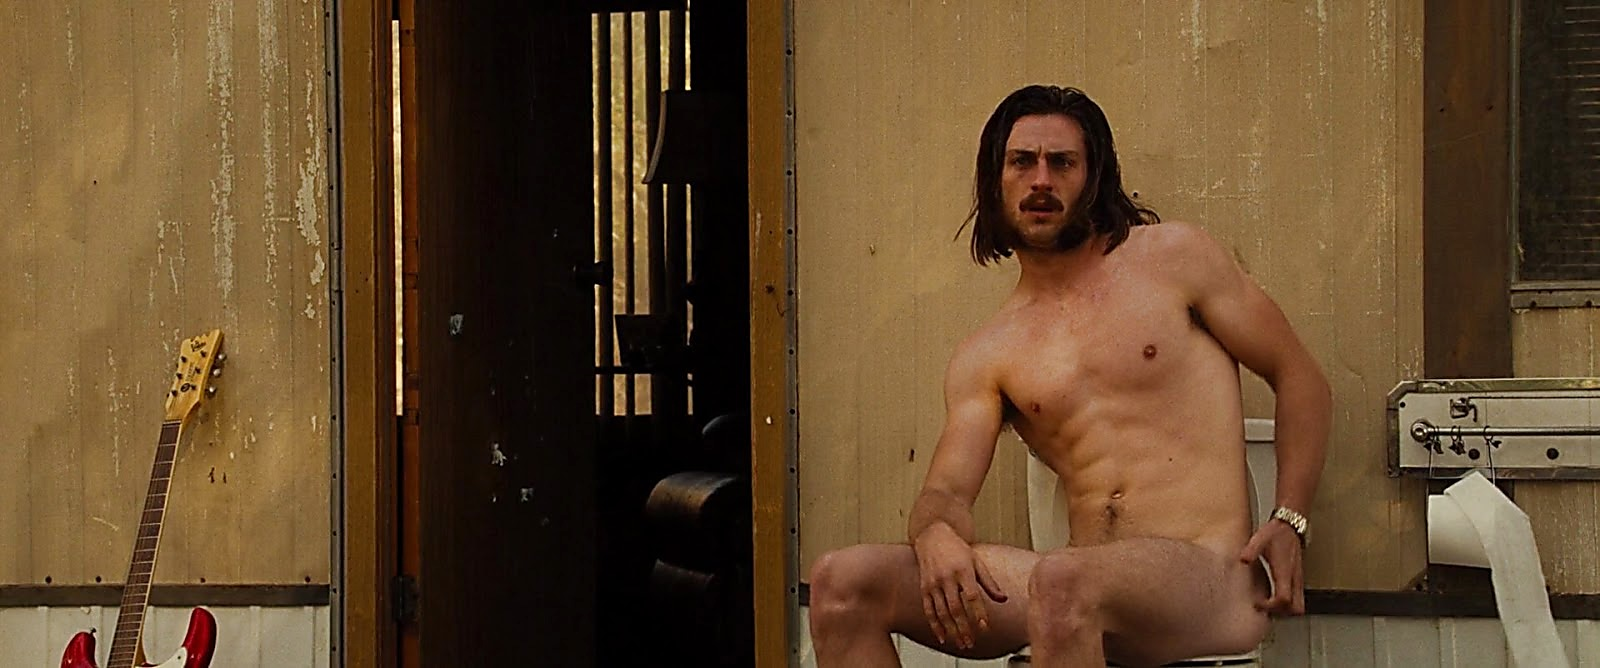 Aaron Taylor Johnson sexy shirtless scene February 7, 2017, 10am